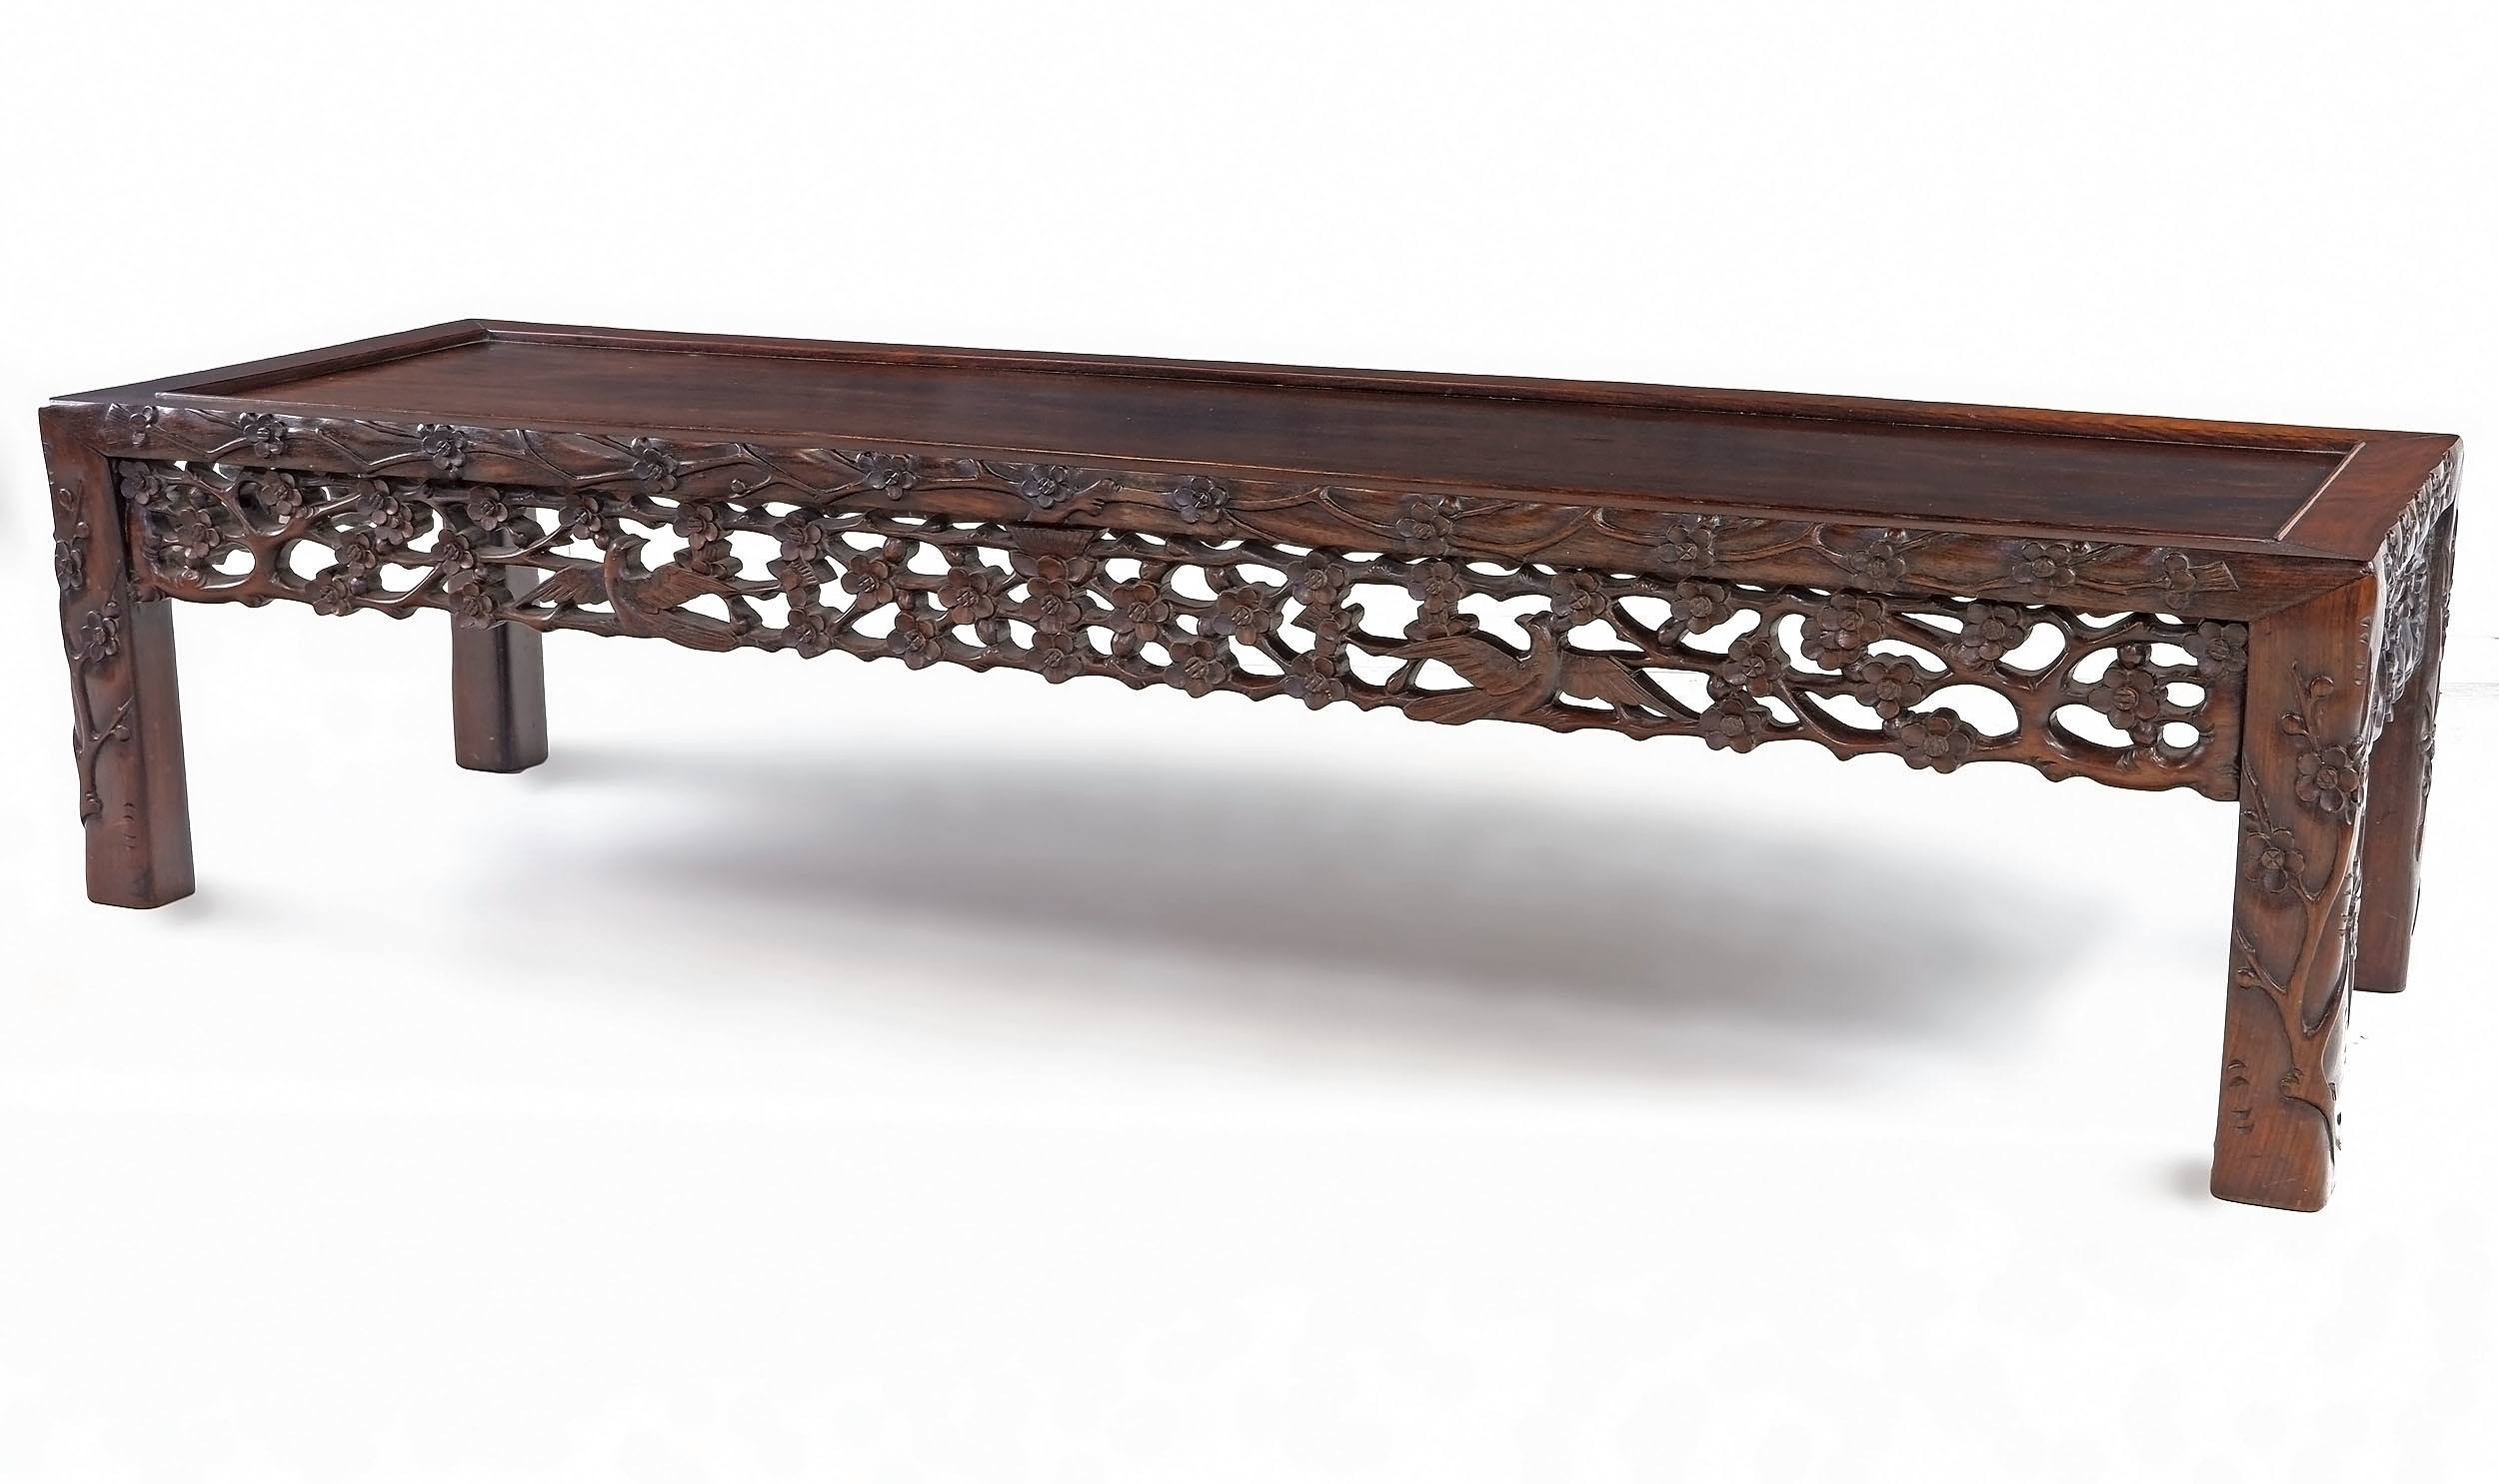 'Large Chinese Carved Rosewood Long Low Table with Carved Floral Motif, Mid to Later 20th Century'